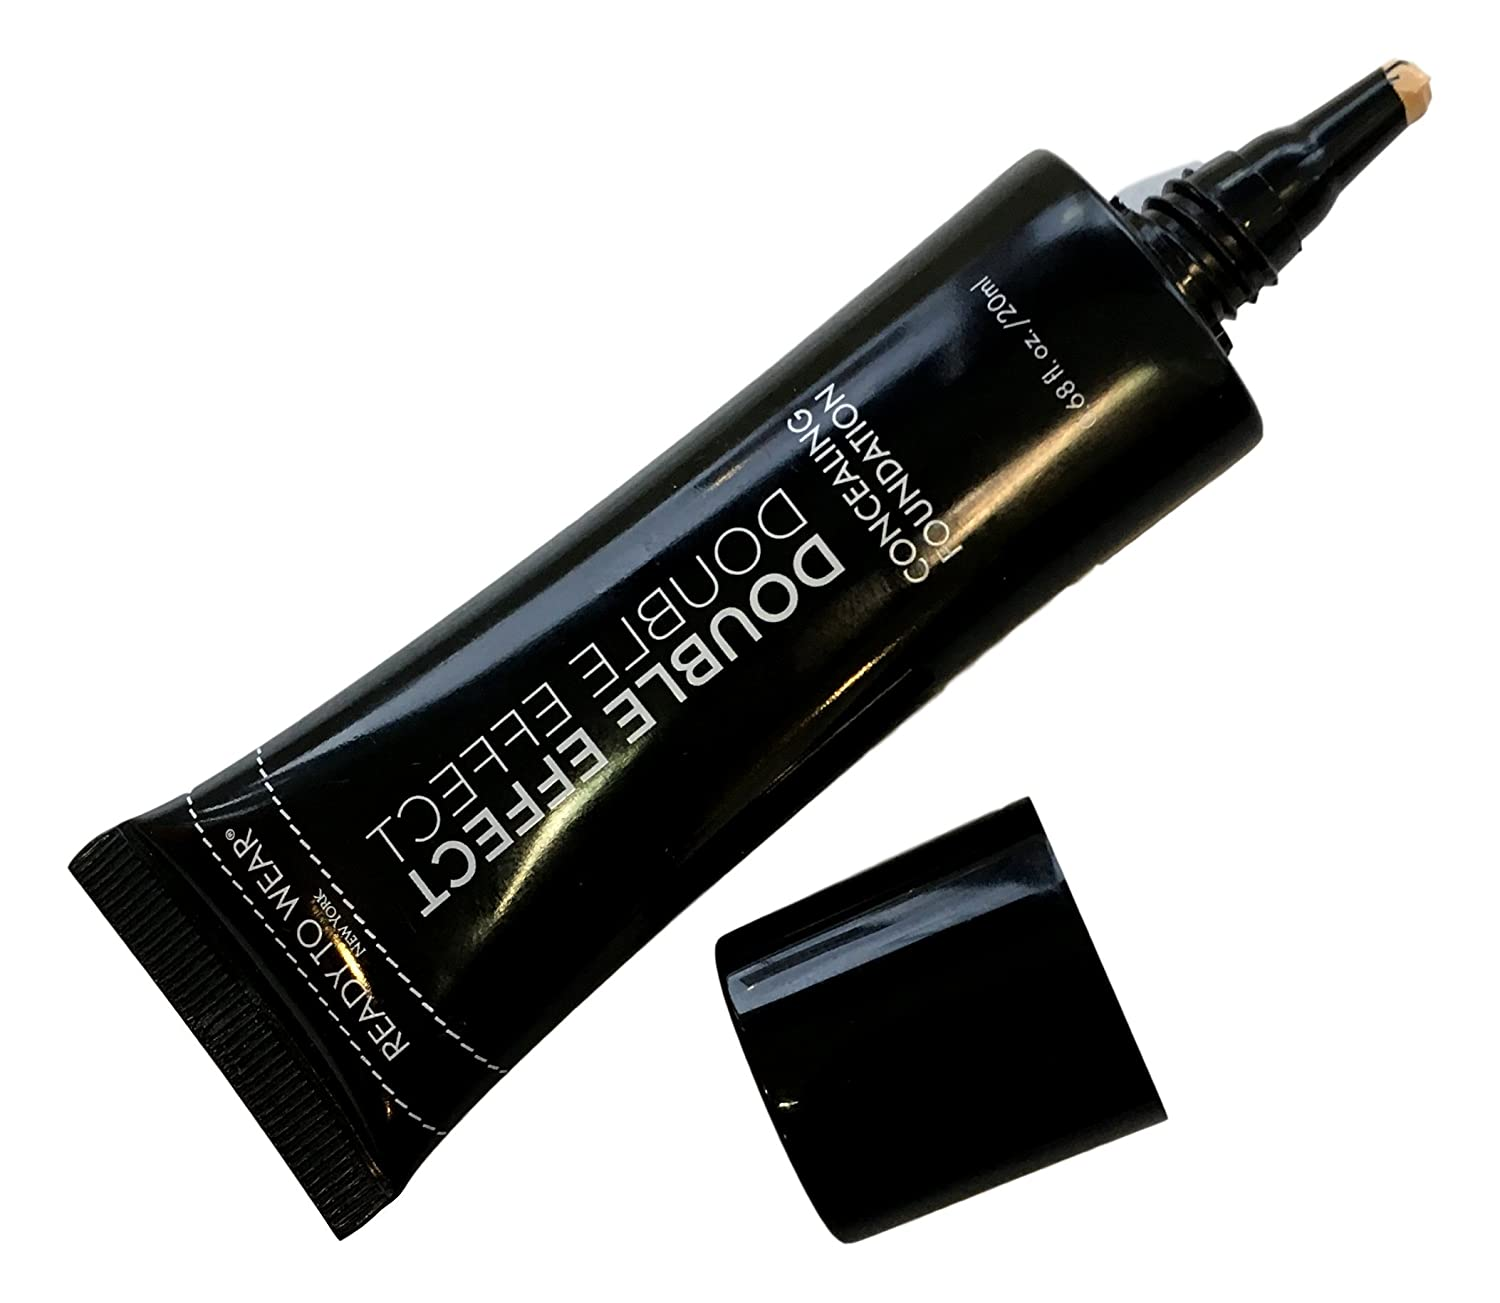 Ready To Wear DOUBLE EFFECT Concealing Foundation Made In Italy MEDIUM